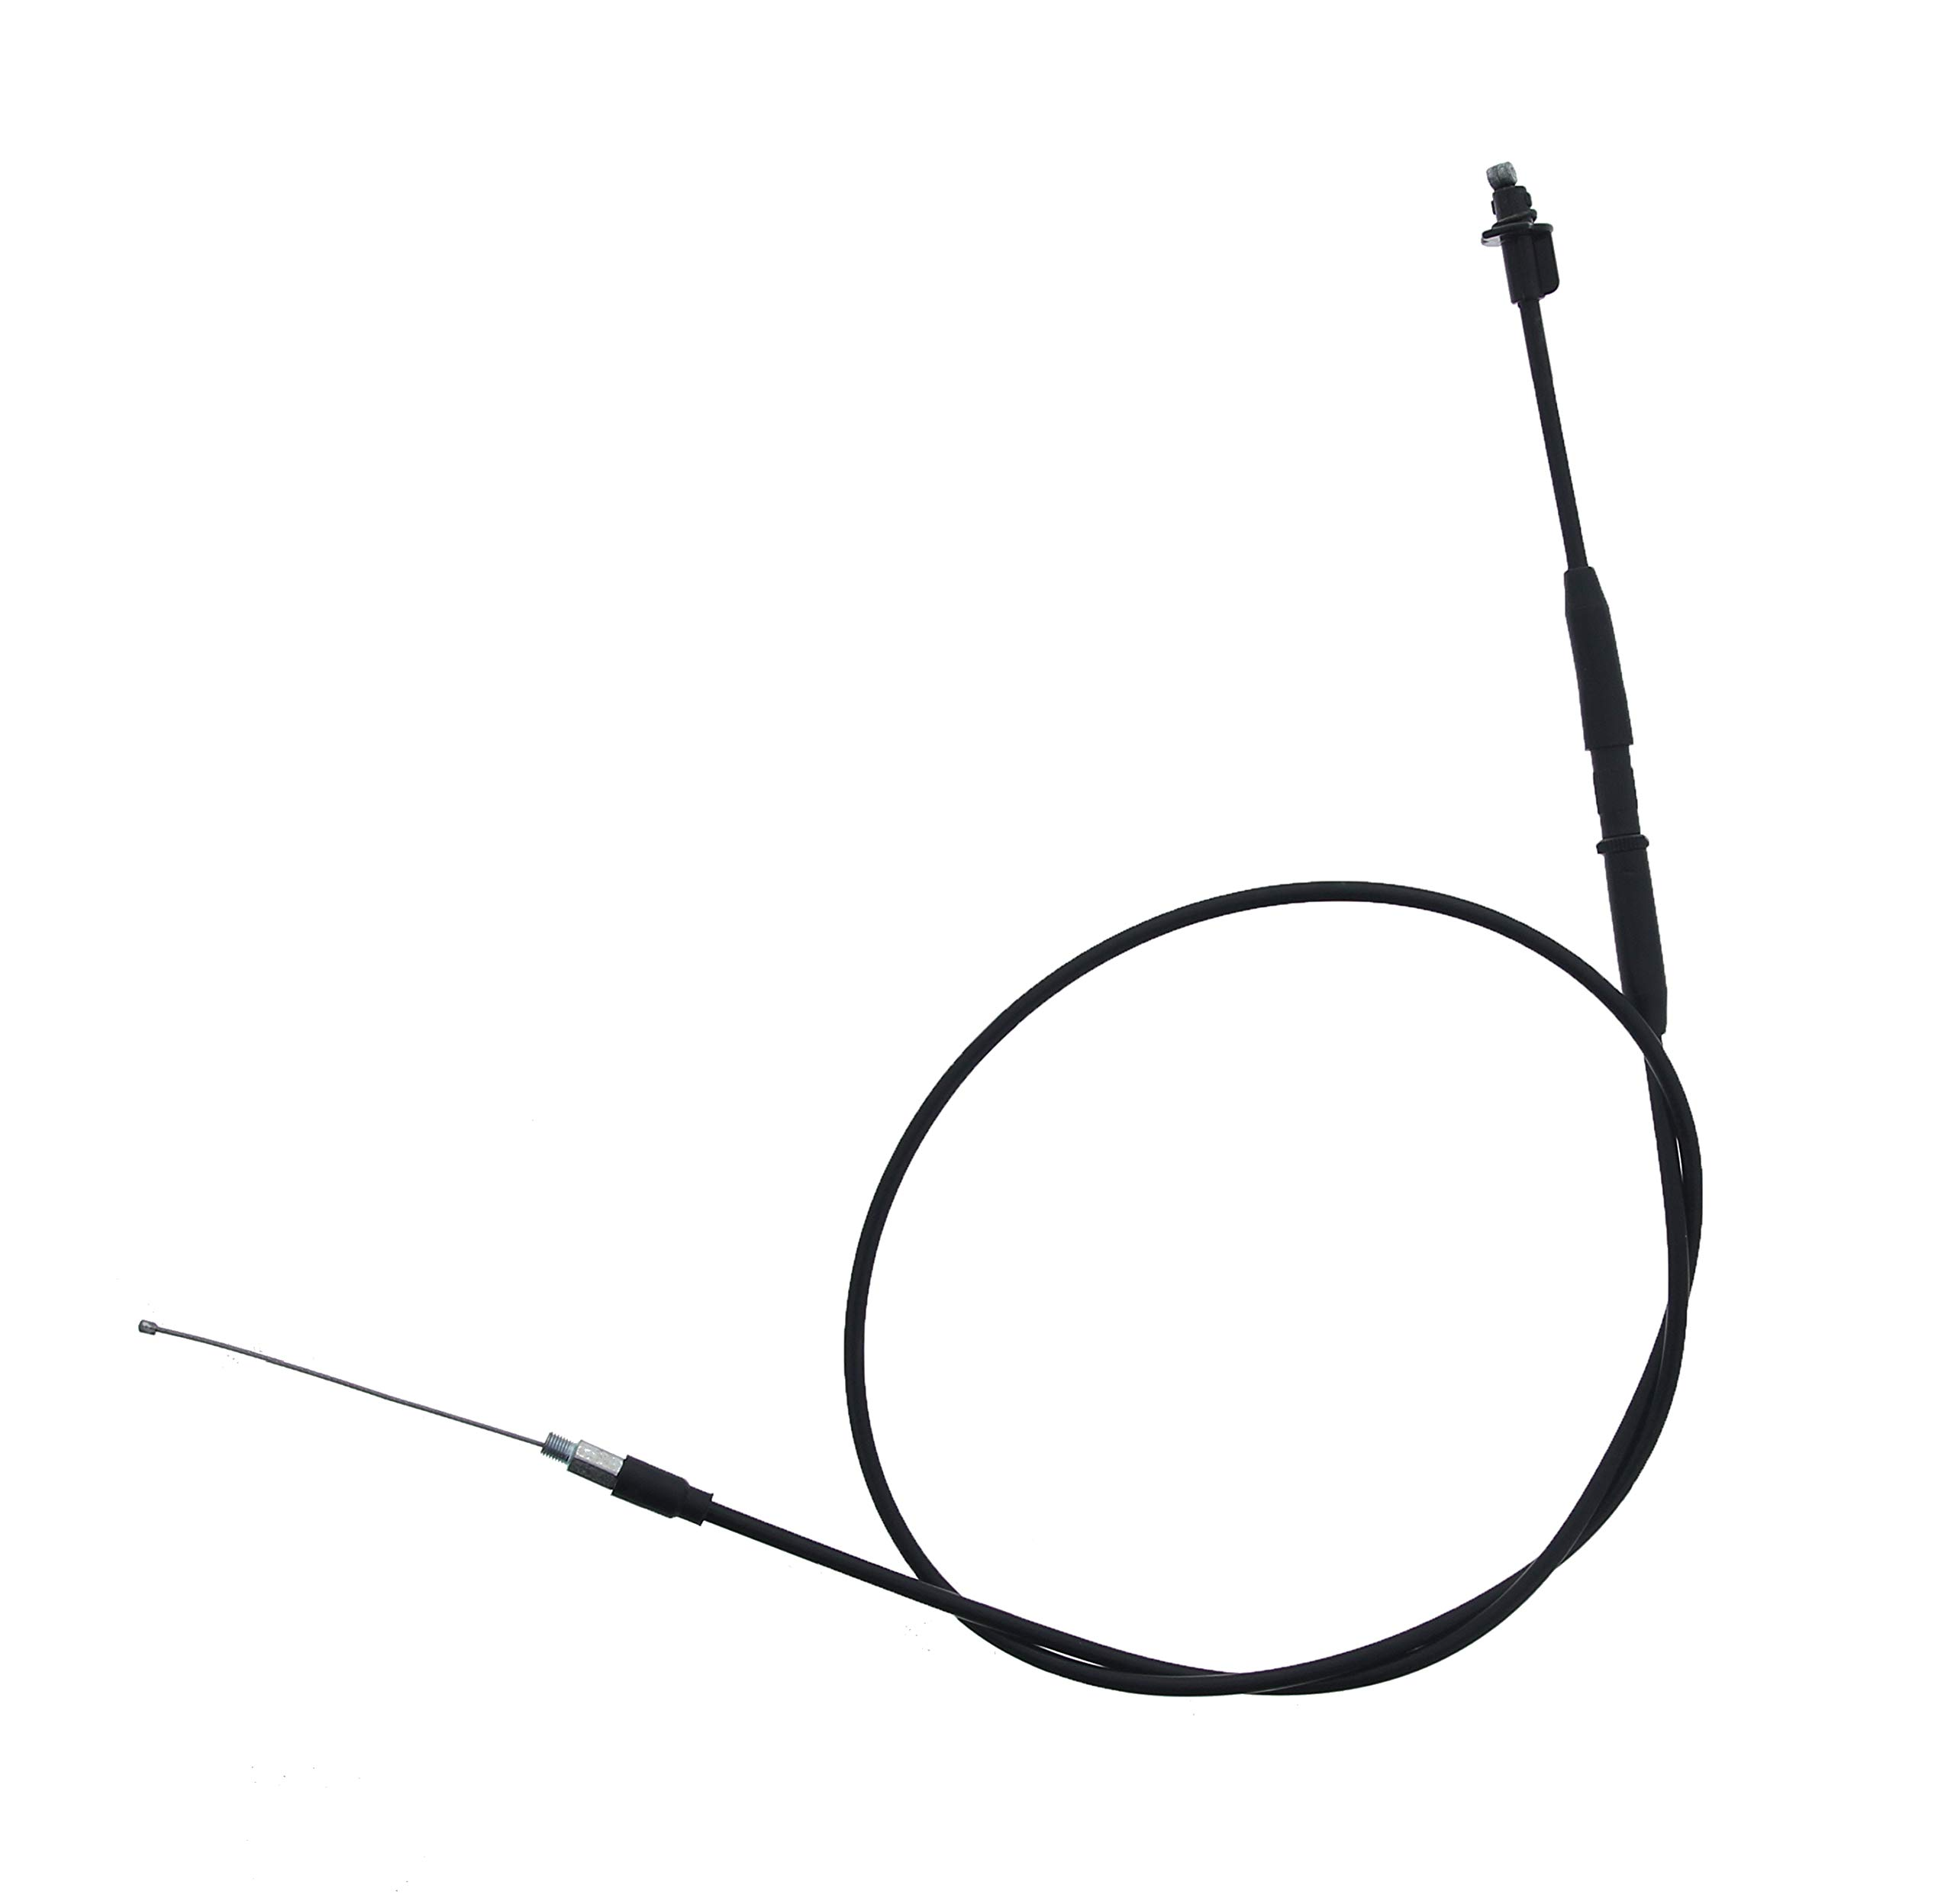 Race Driven Throttle Cable OEM 7081219 for Polaris Sportsman MV7 600 700 by Race-Driven